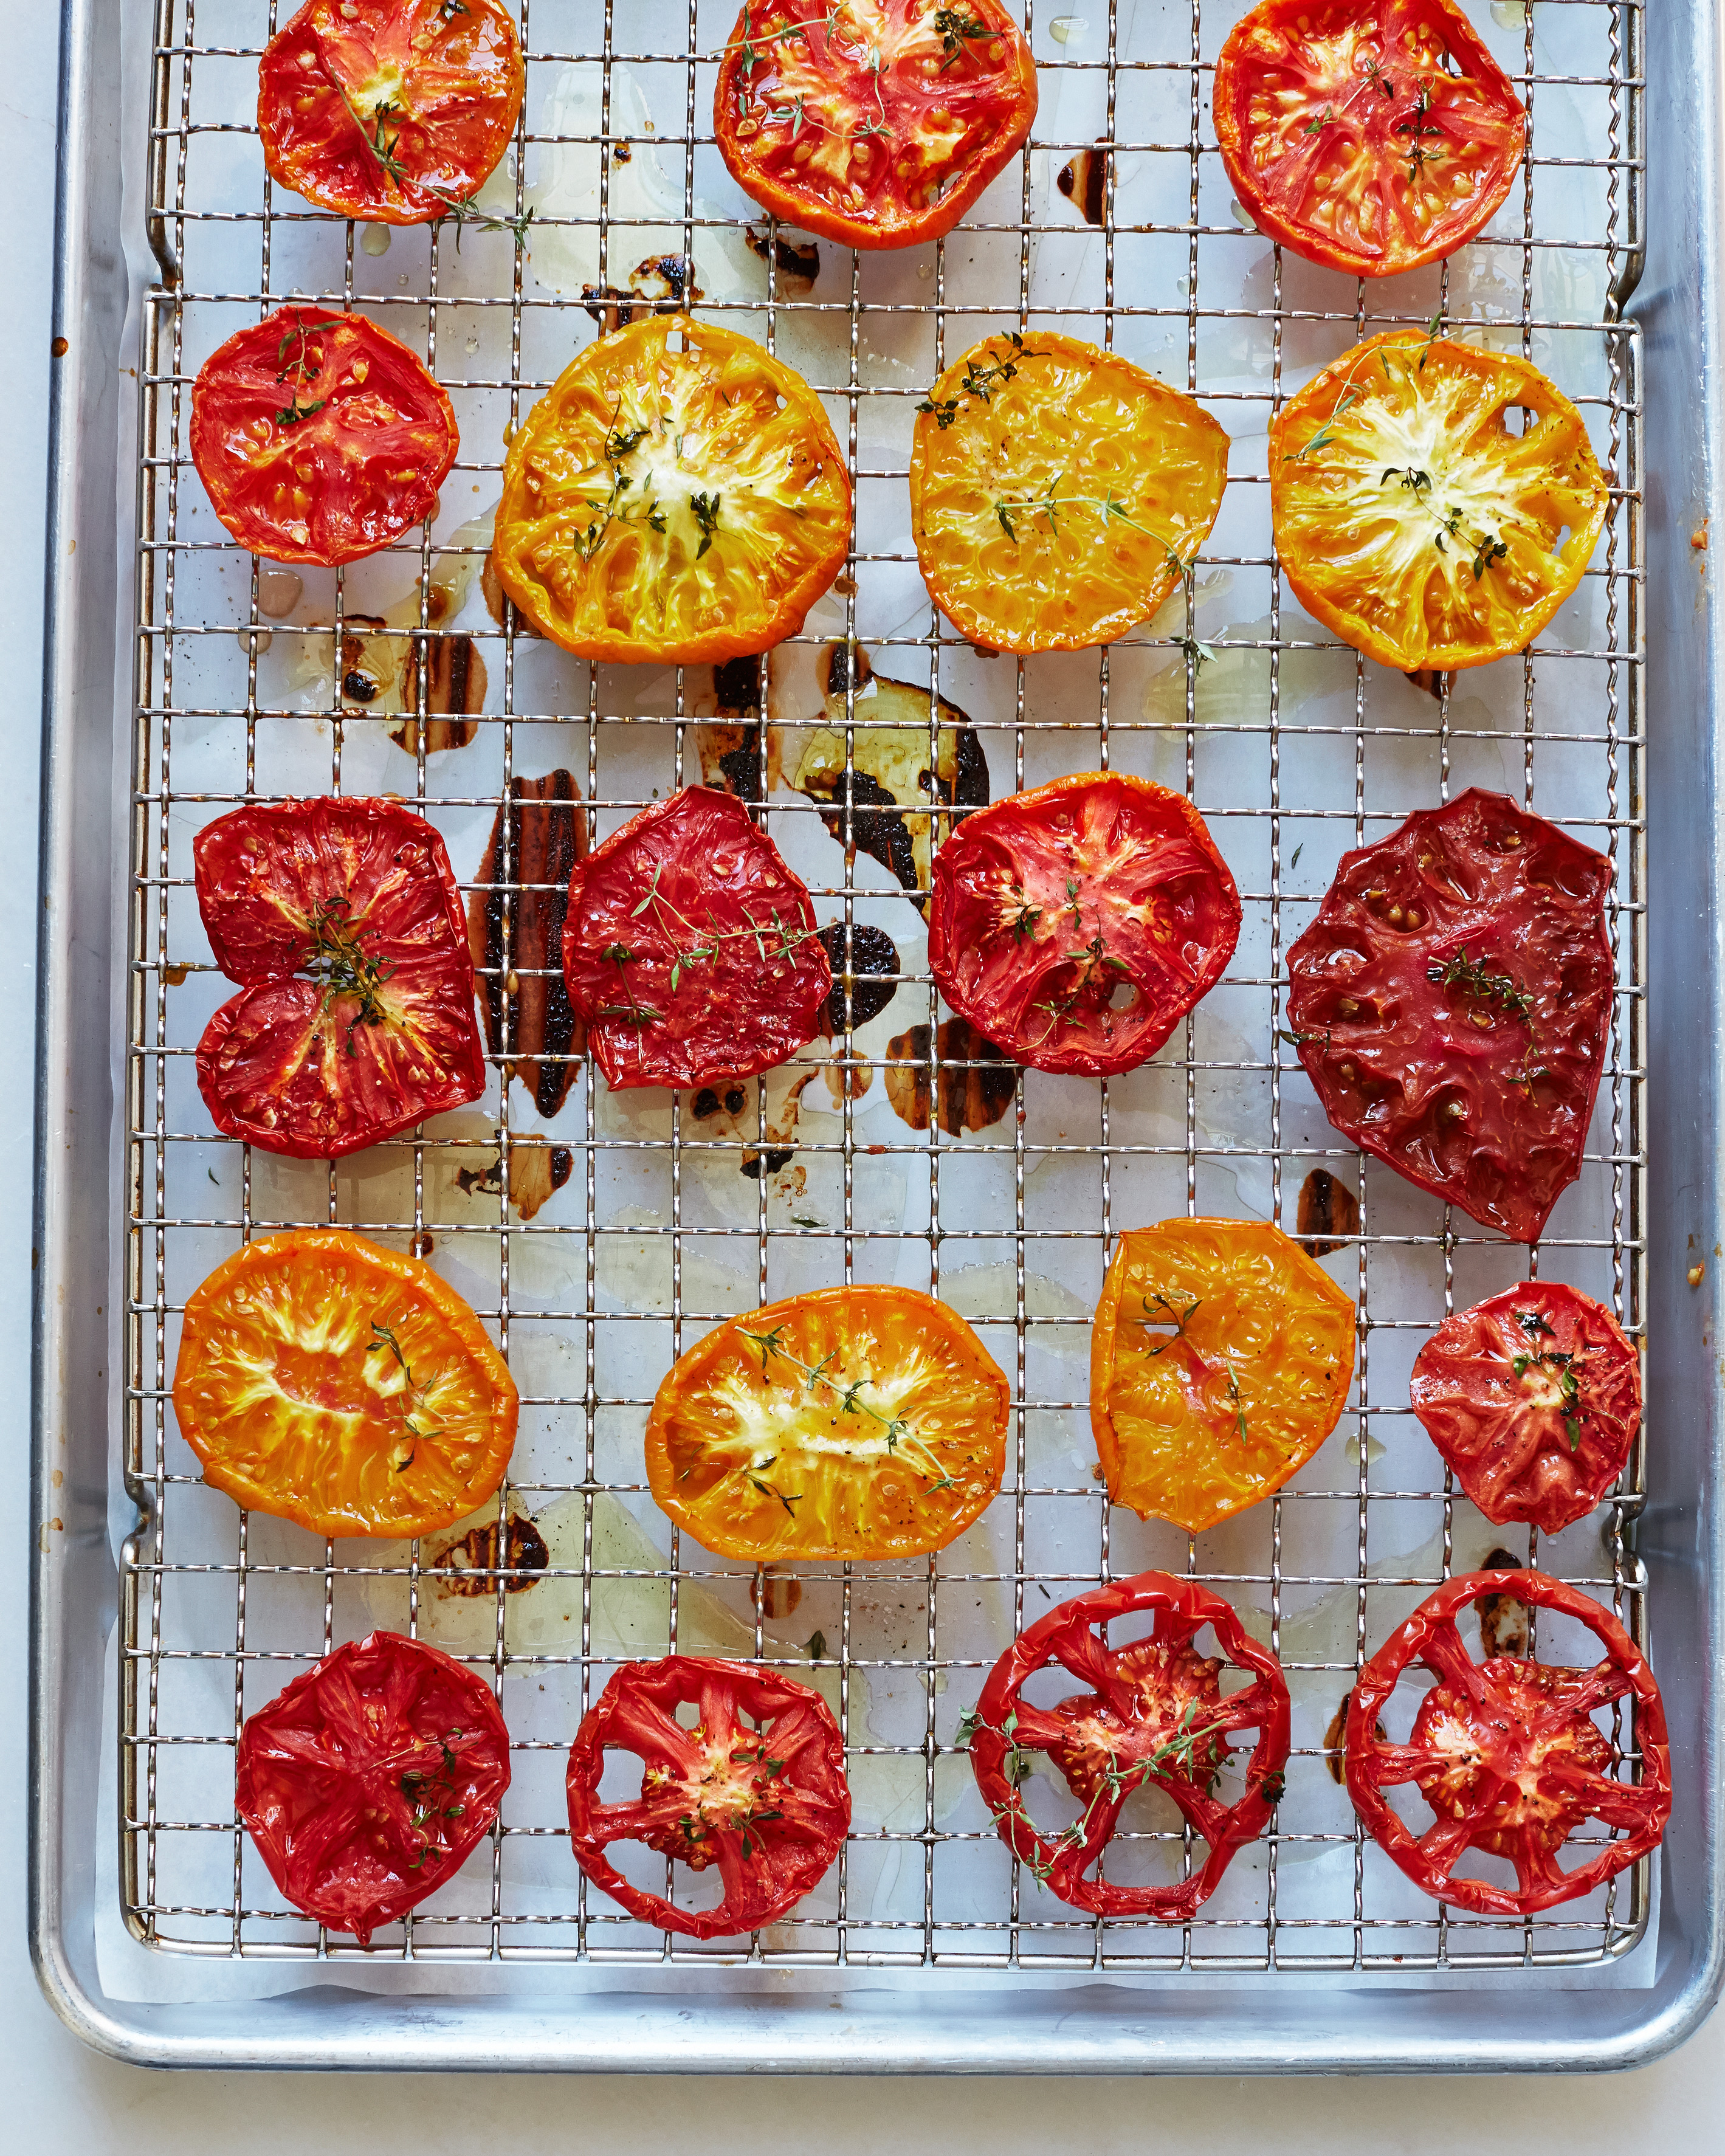 tomato-how-to-297-d112616.jpg